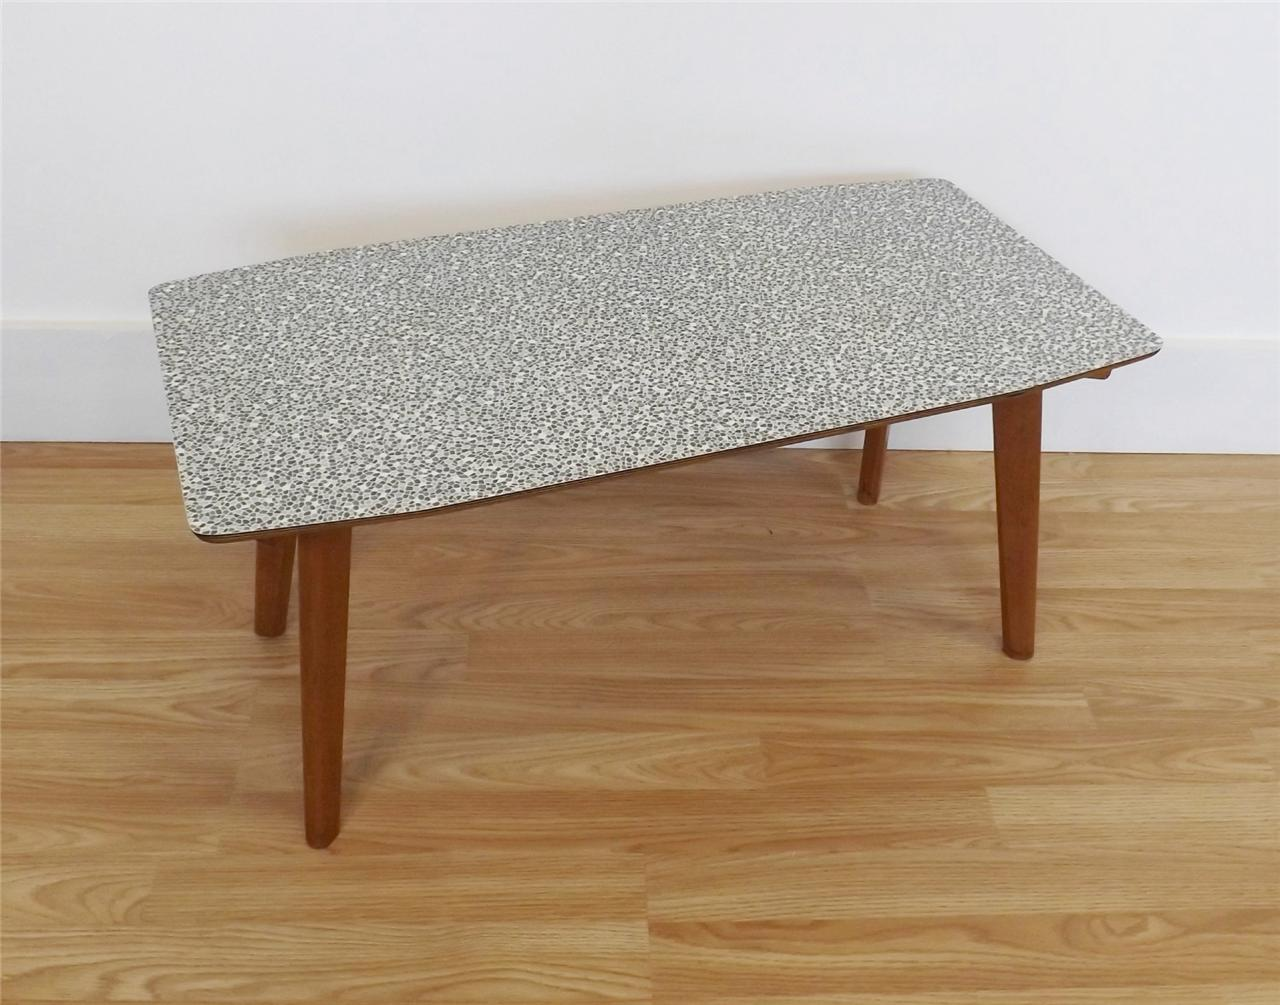 Formica coffee table retro vintage mid century atomic 50s for 60s coffee table